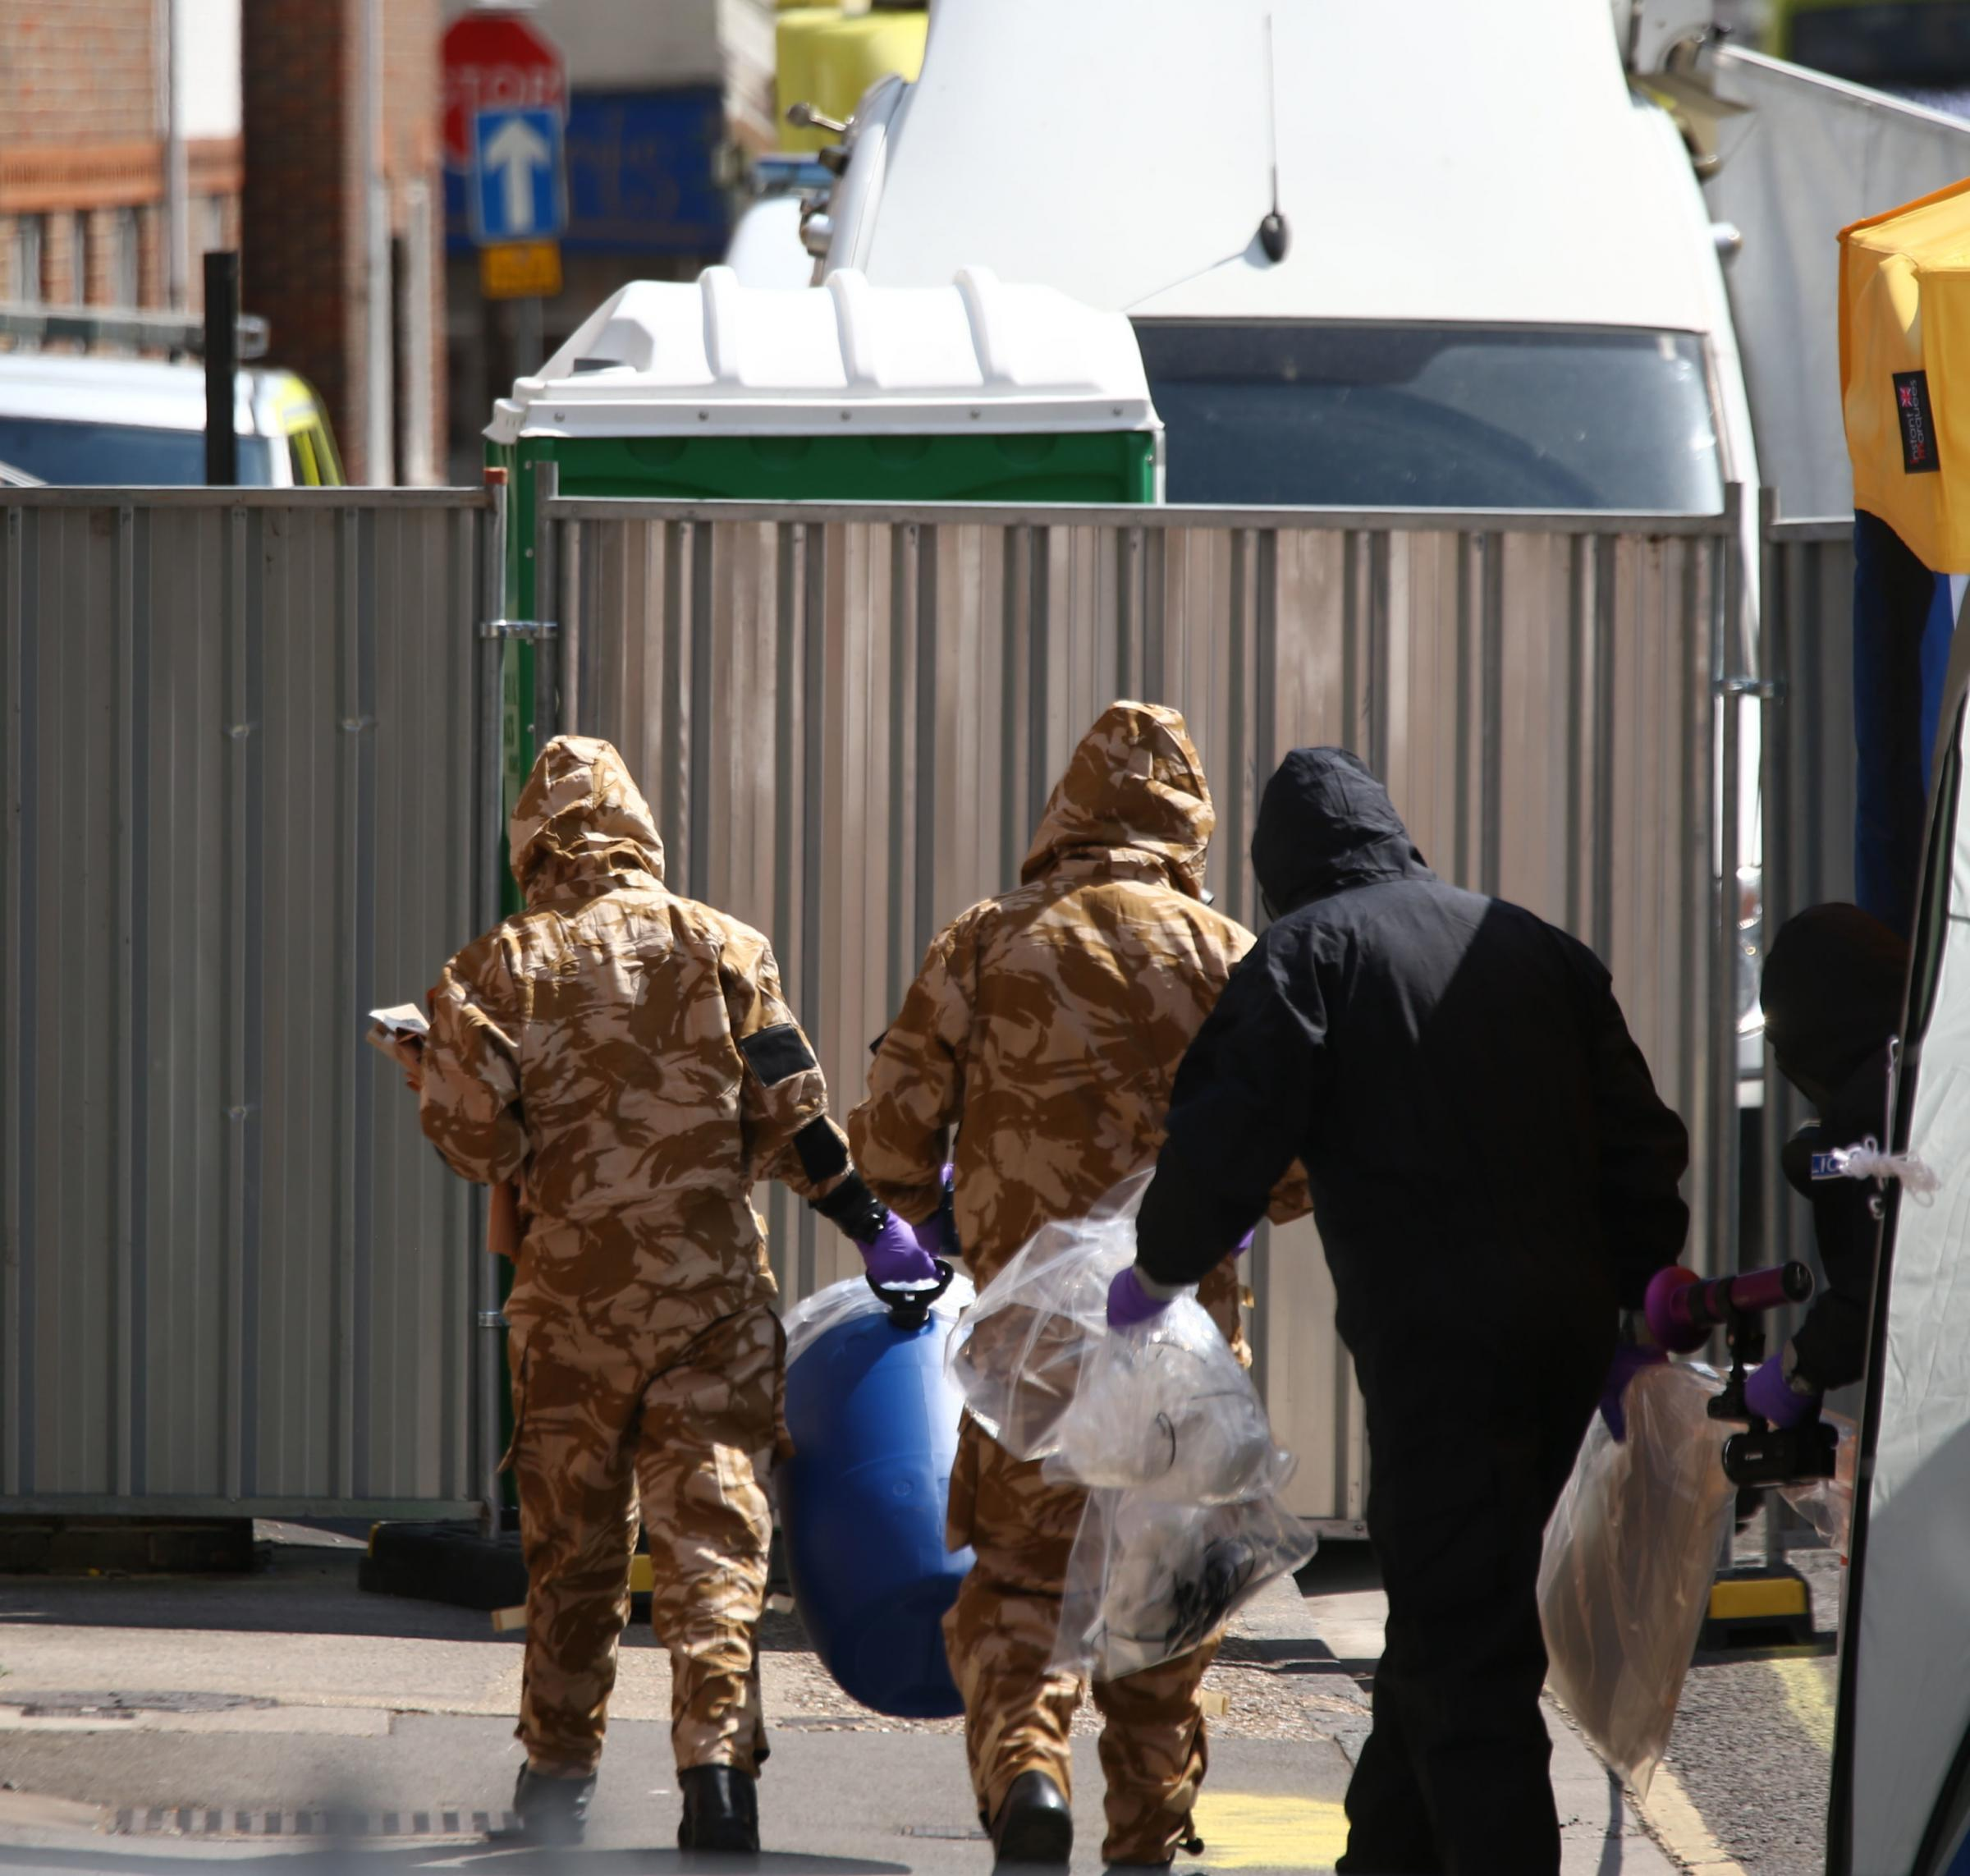 Investigators in chemical suits work behind screens erected in Rollestone Street, Salisbury, Wiltshire, where counter-terrorism officers are investigating after a couple were left in a critical condition when they were exposed to the nerve agent Novichok.